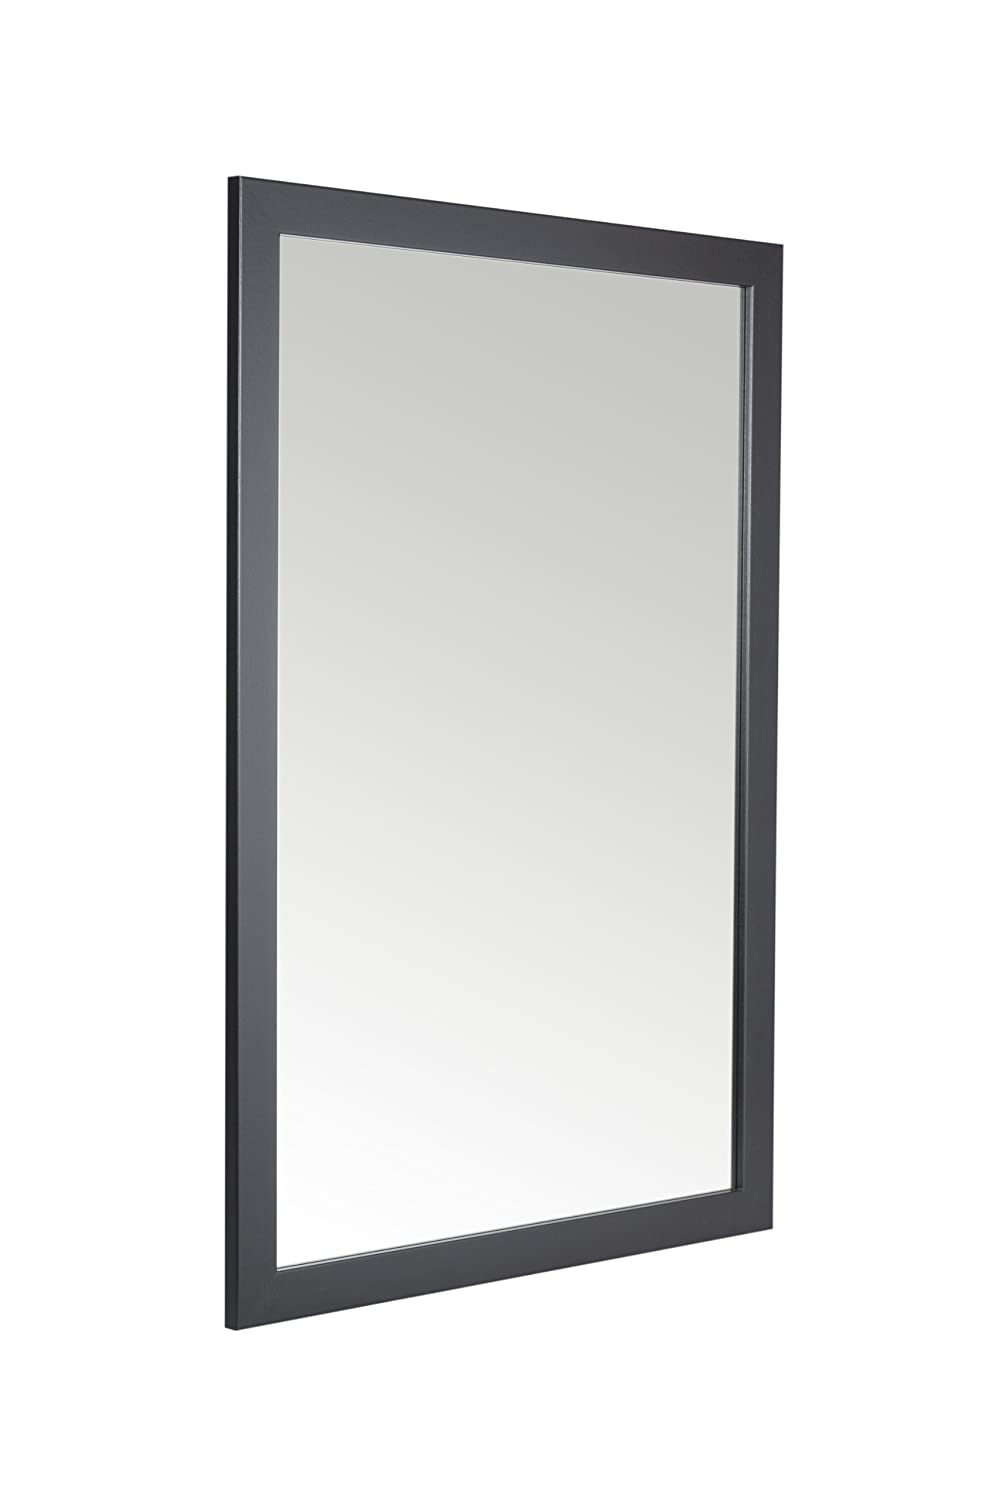 58 x 84cm Black Framed Mirror with Wall Hanging Fixings